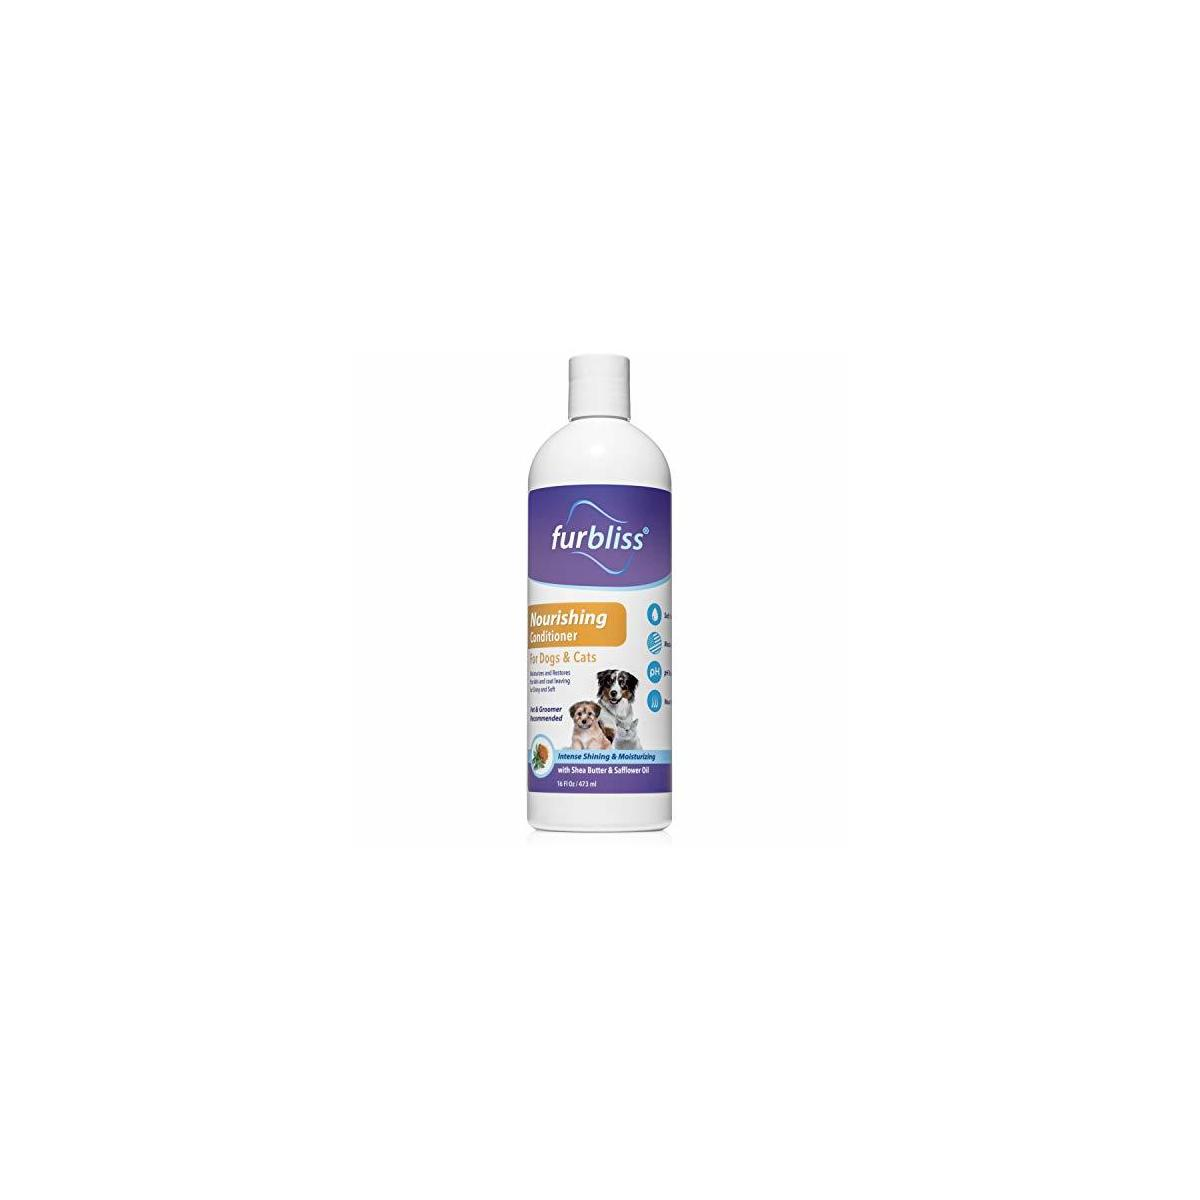 Furbliss Nourishing Dog & Cat Conditioner